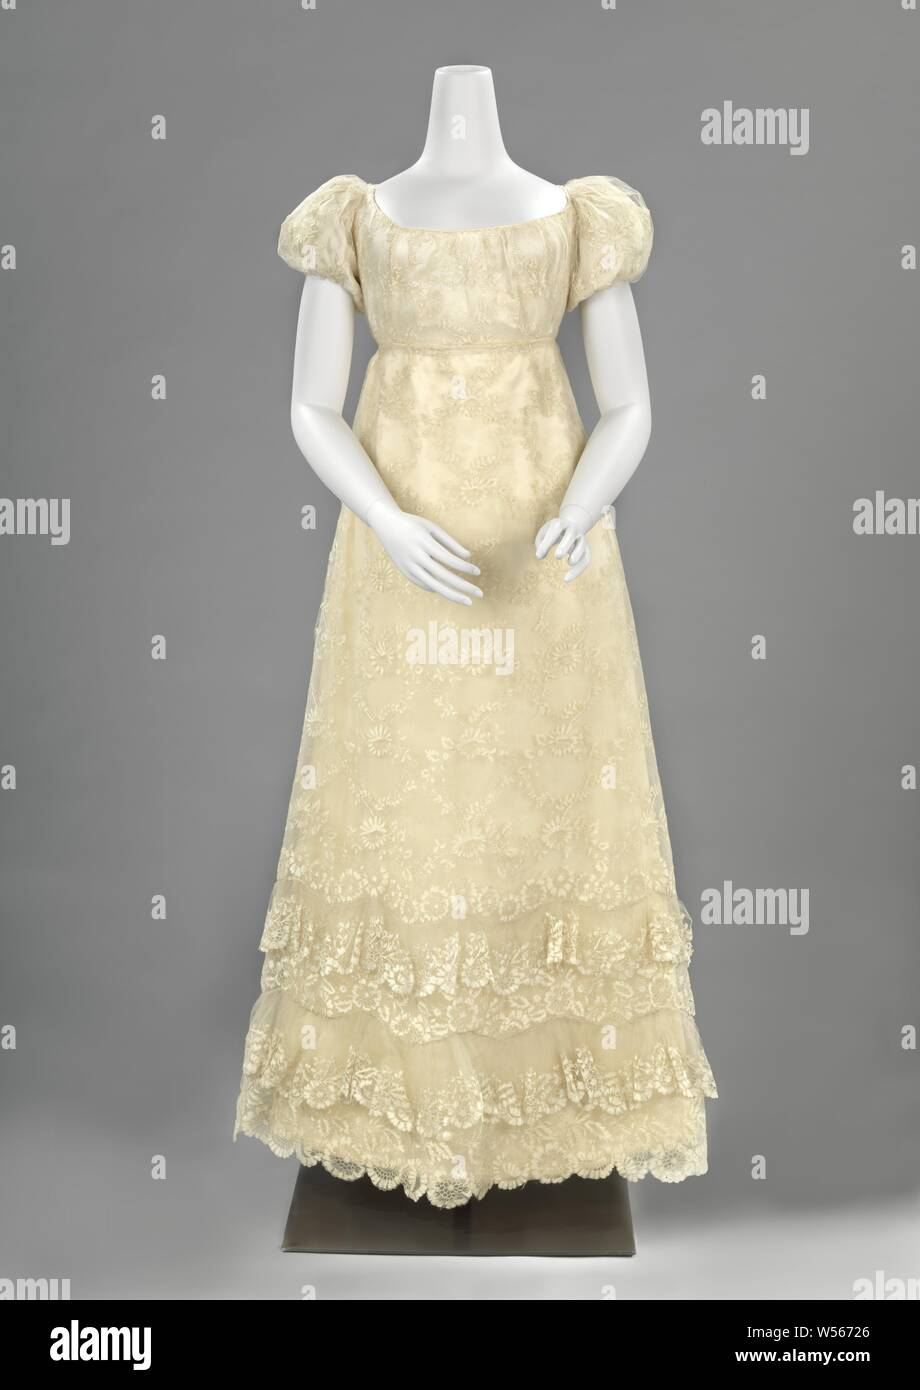 Lace Dress High Resolution Stock Photography and Images - Alamy